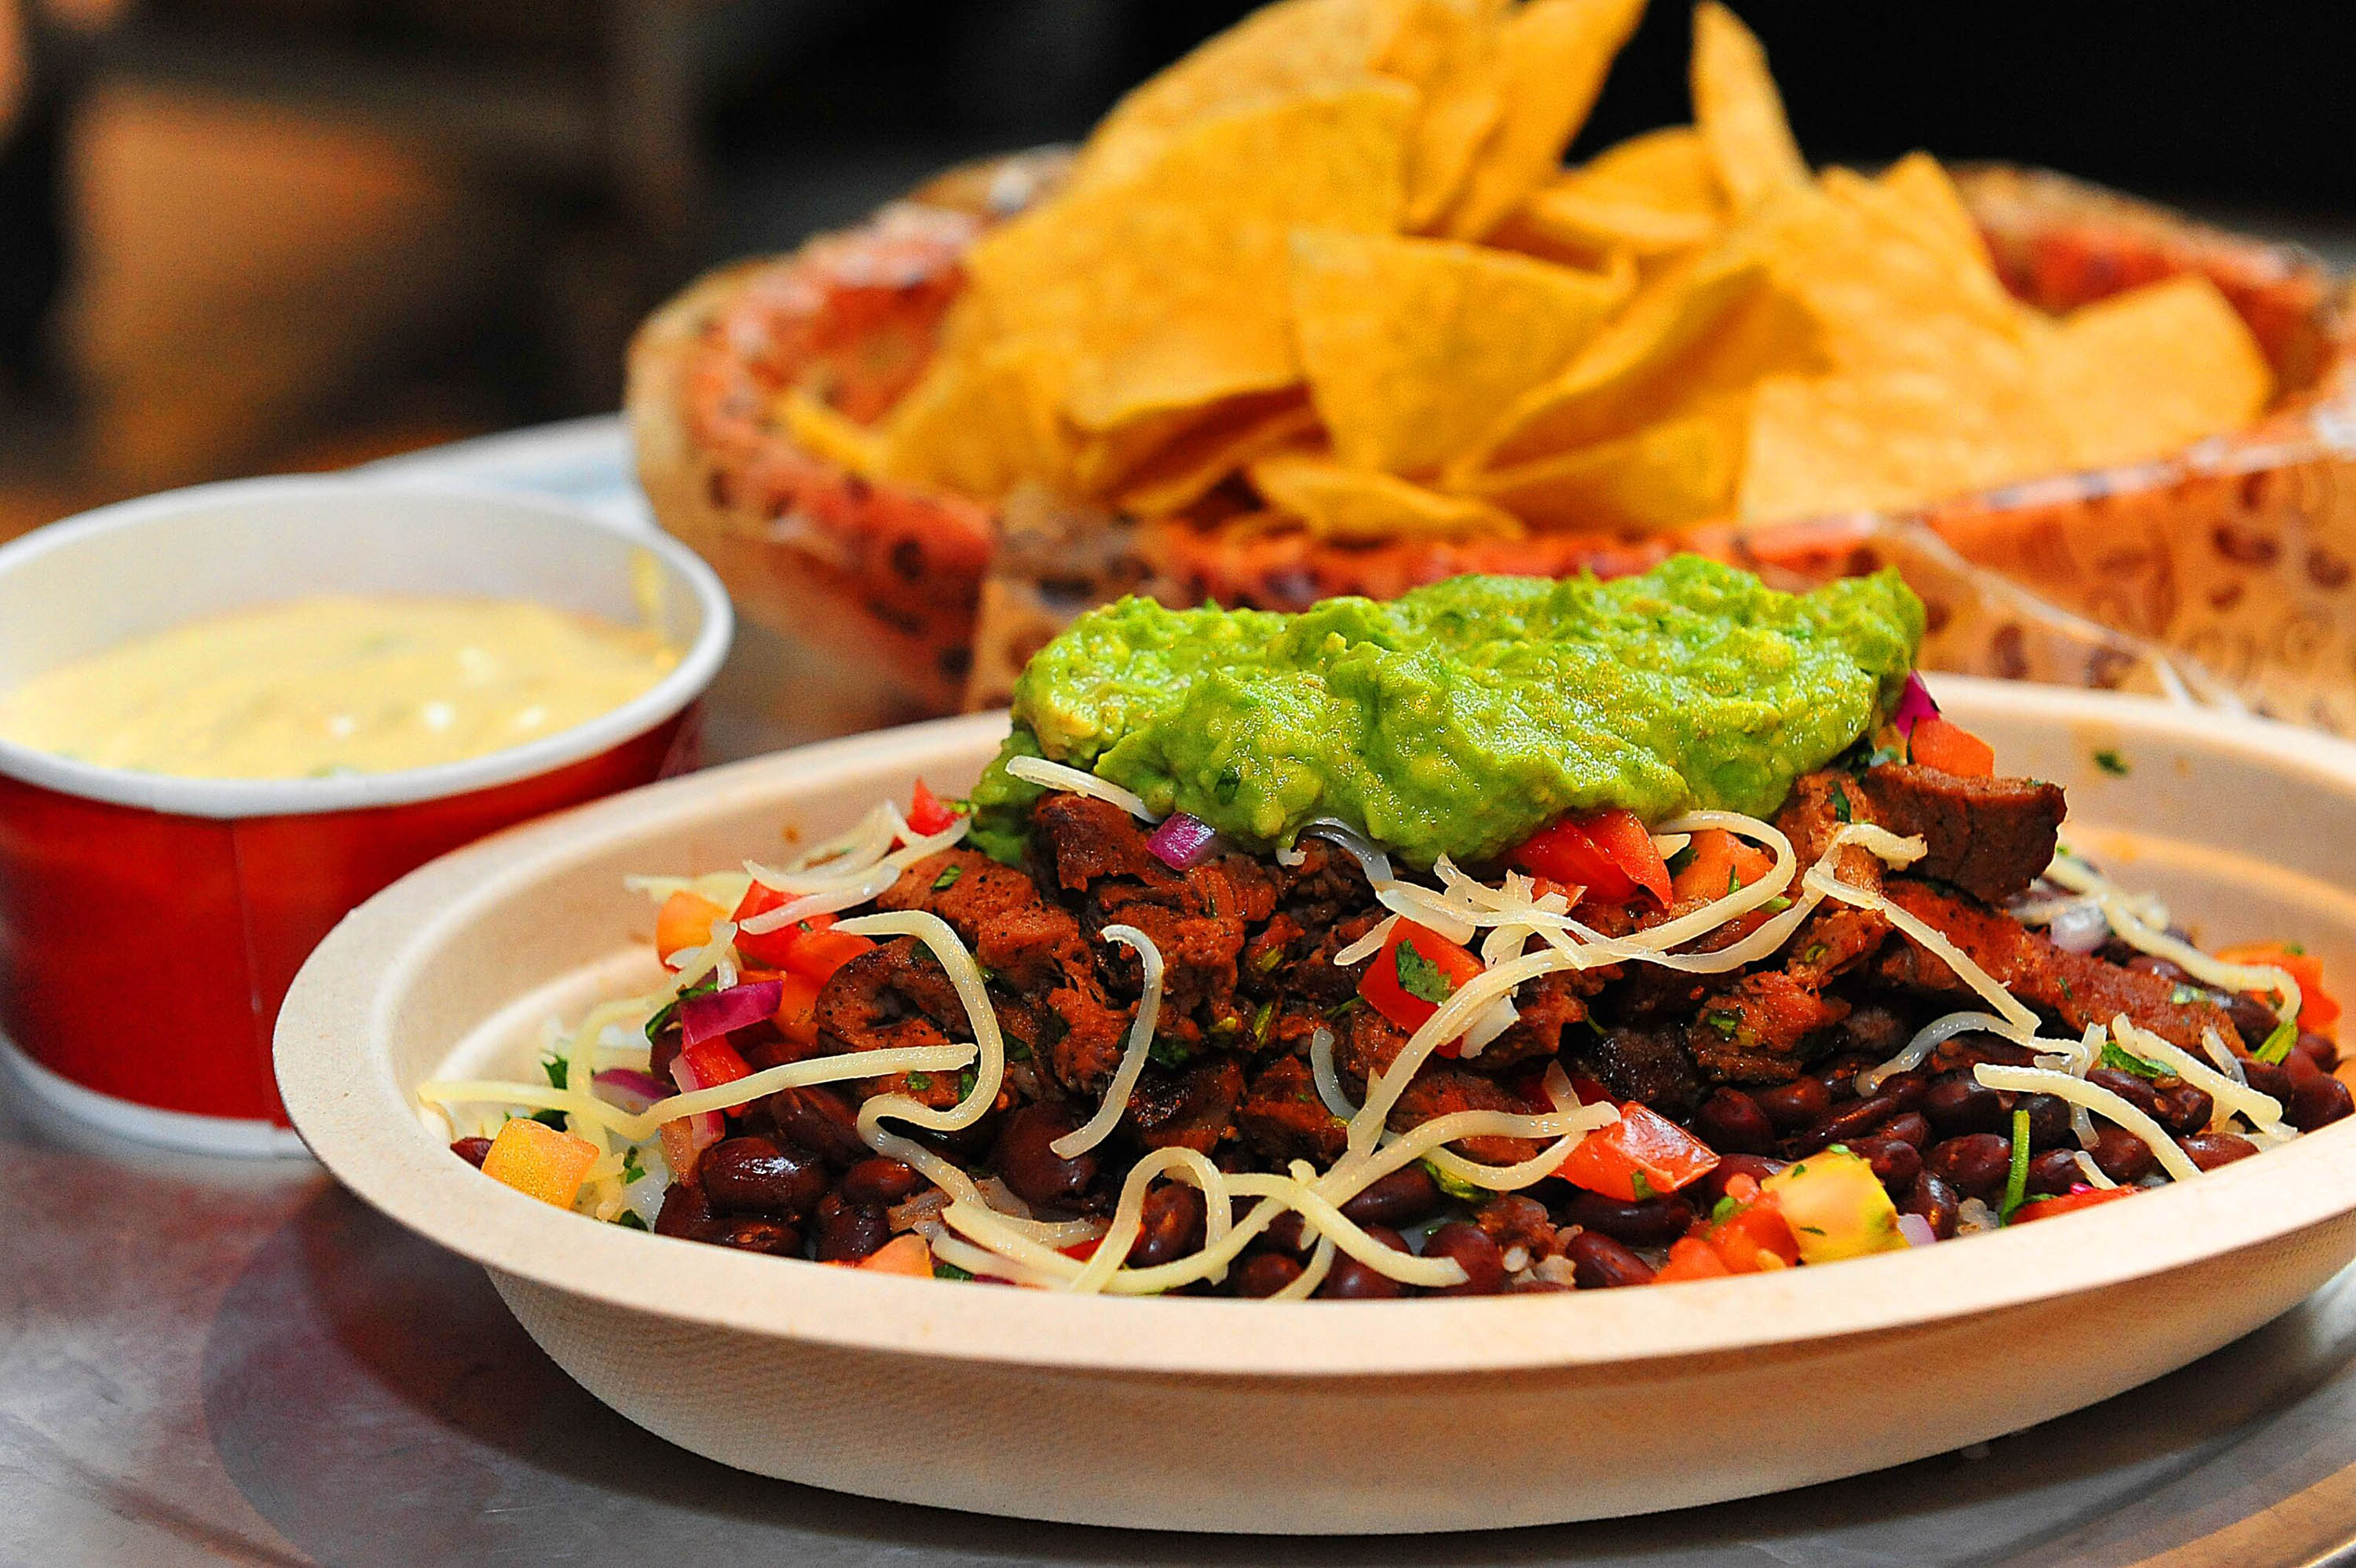 Chipotle brings back its most popular new menu item